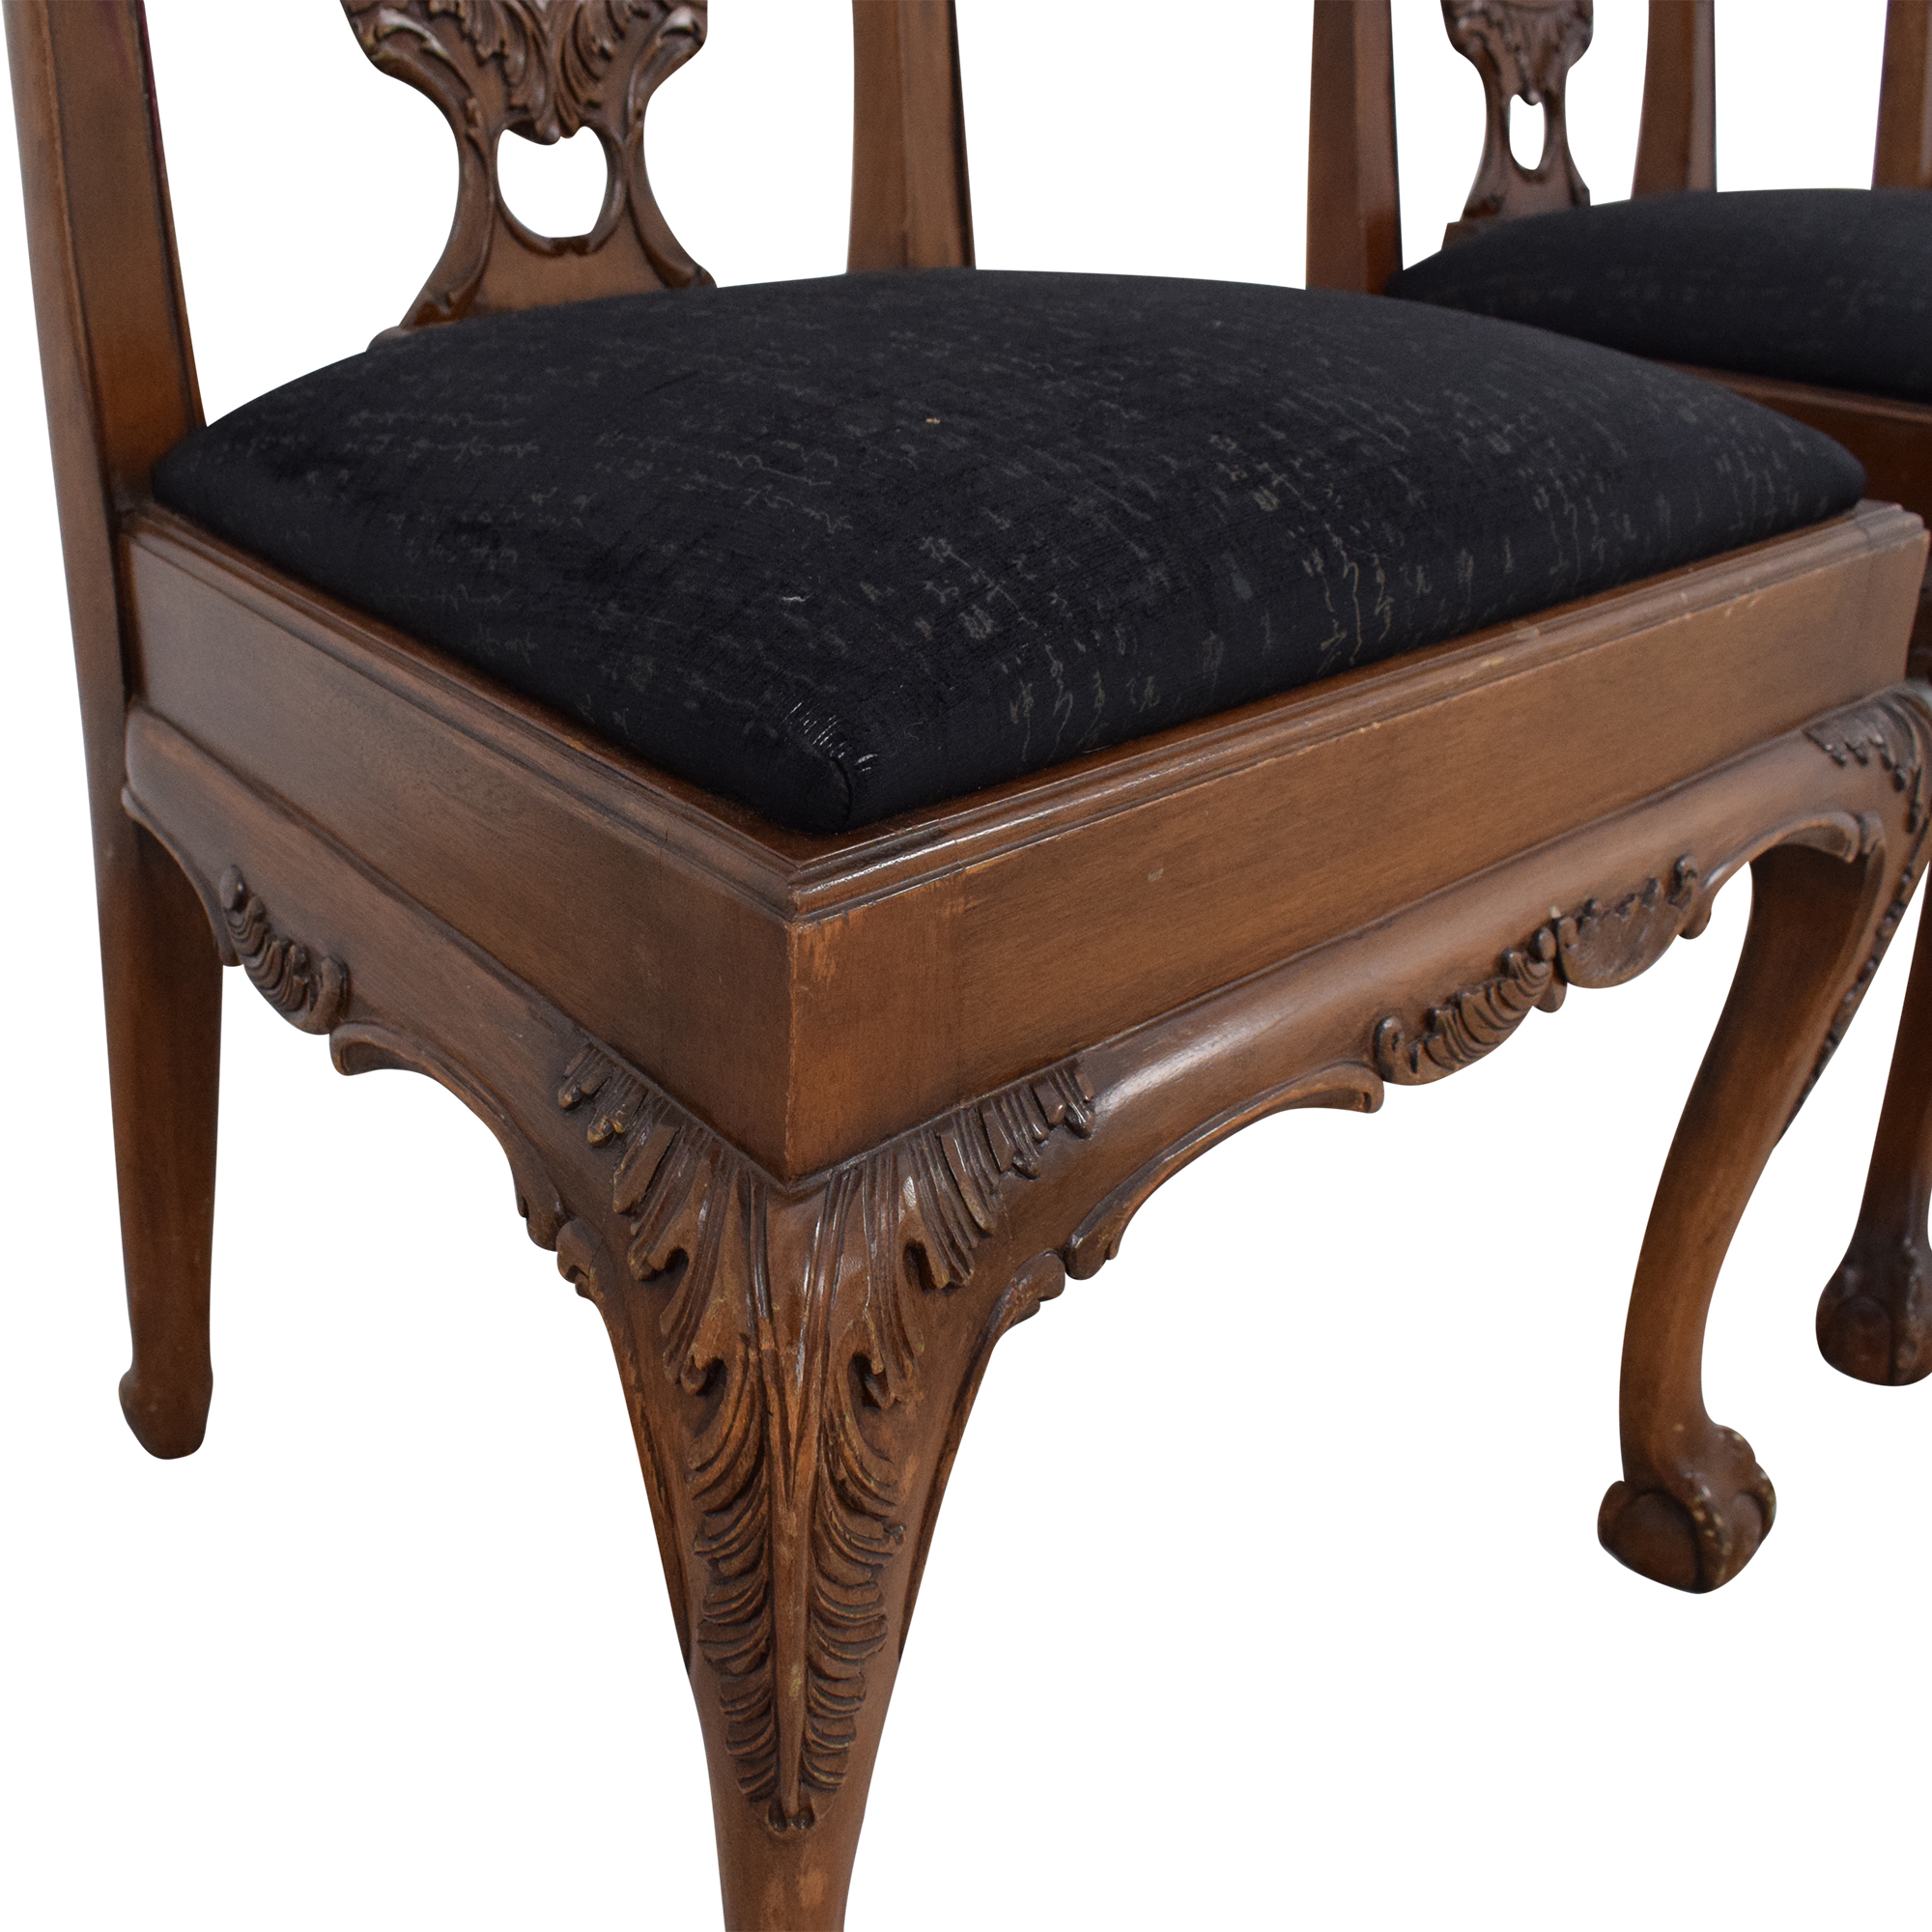 buy Maitland-Smith Carved Chippendale Style Dining Chairs Maitland-Smith Dining Chairs